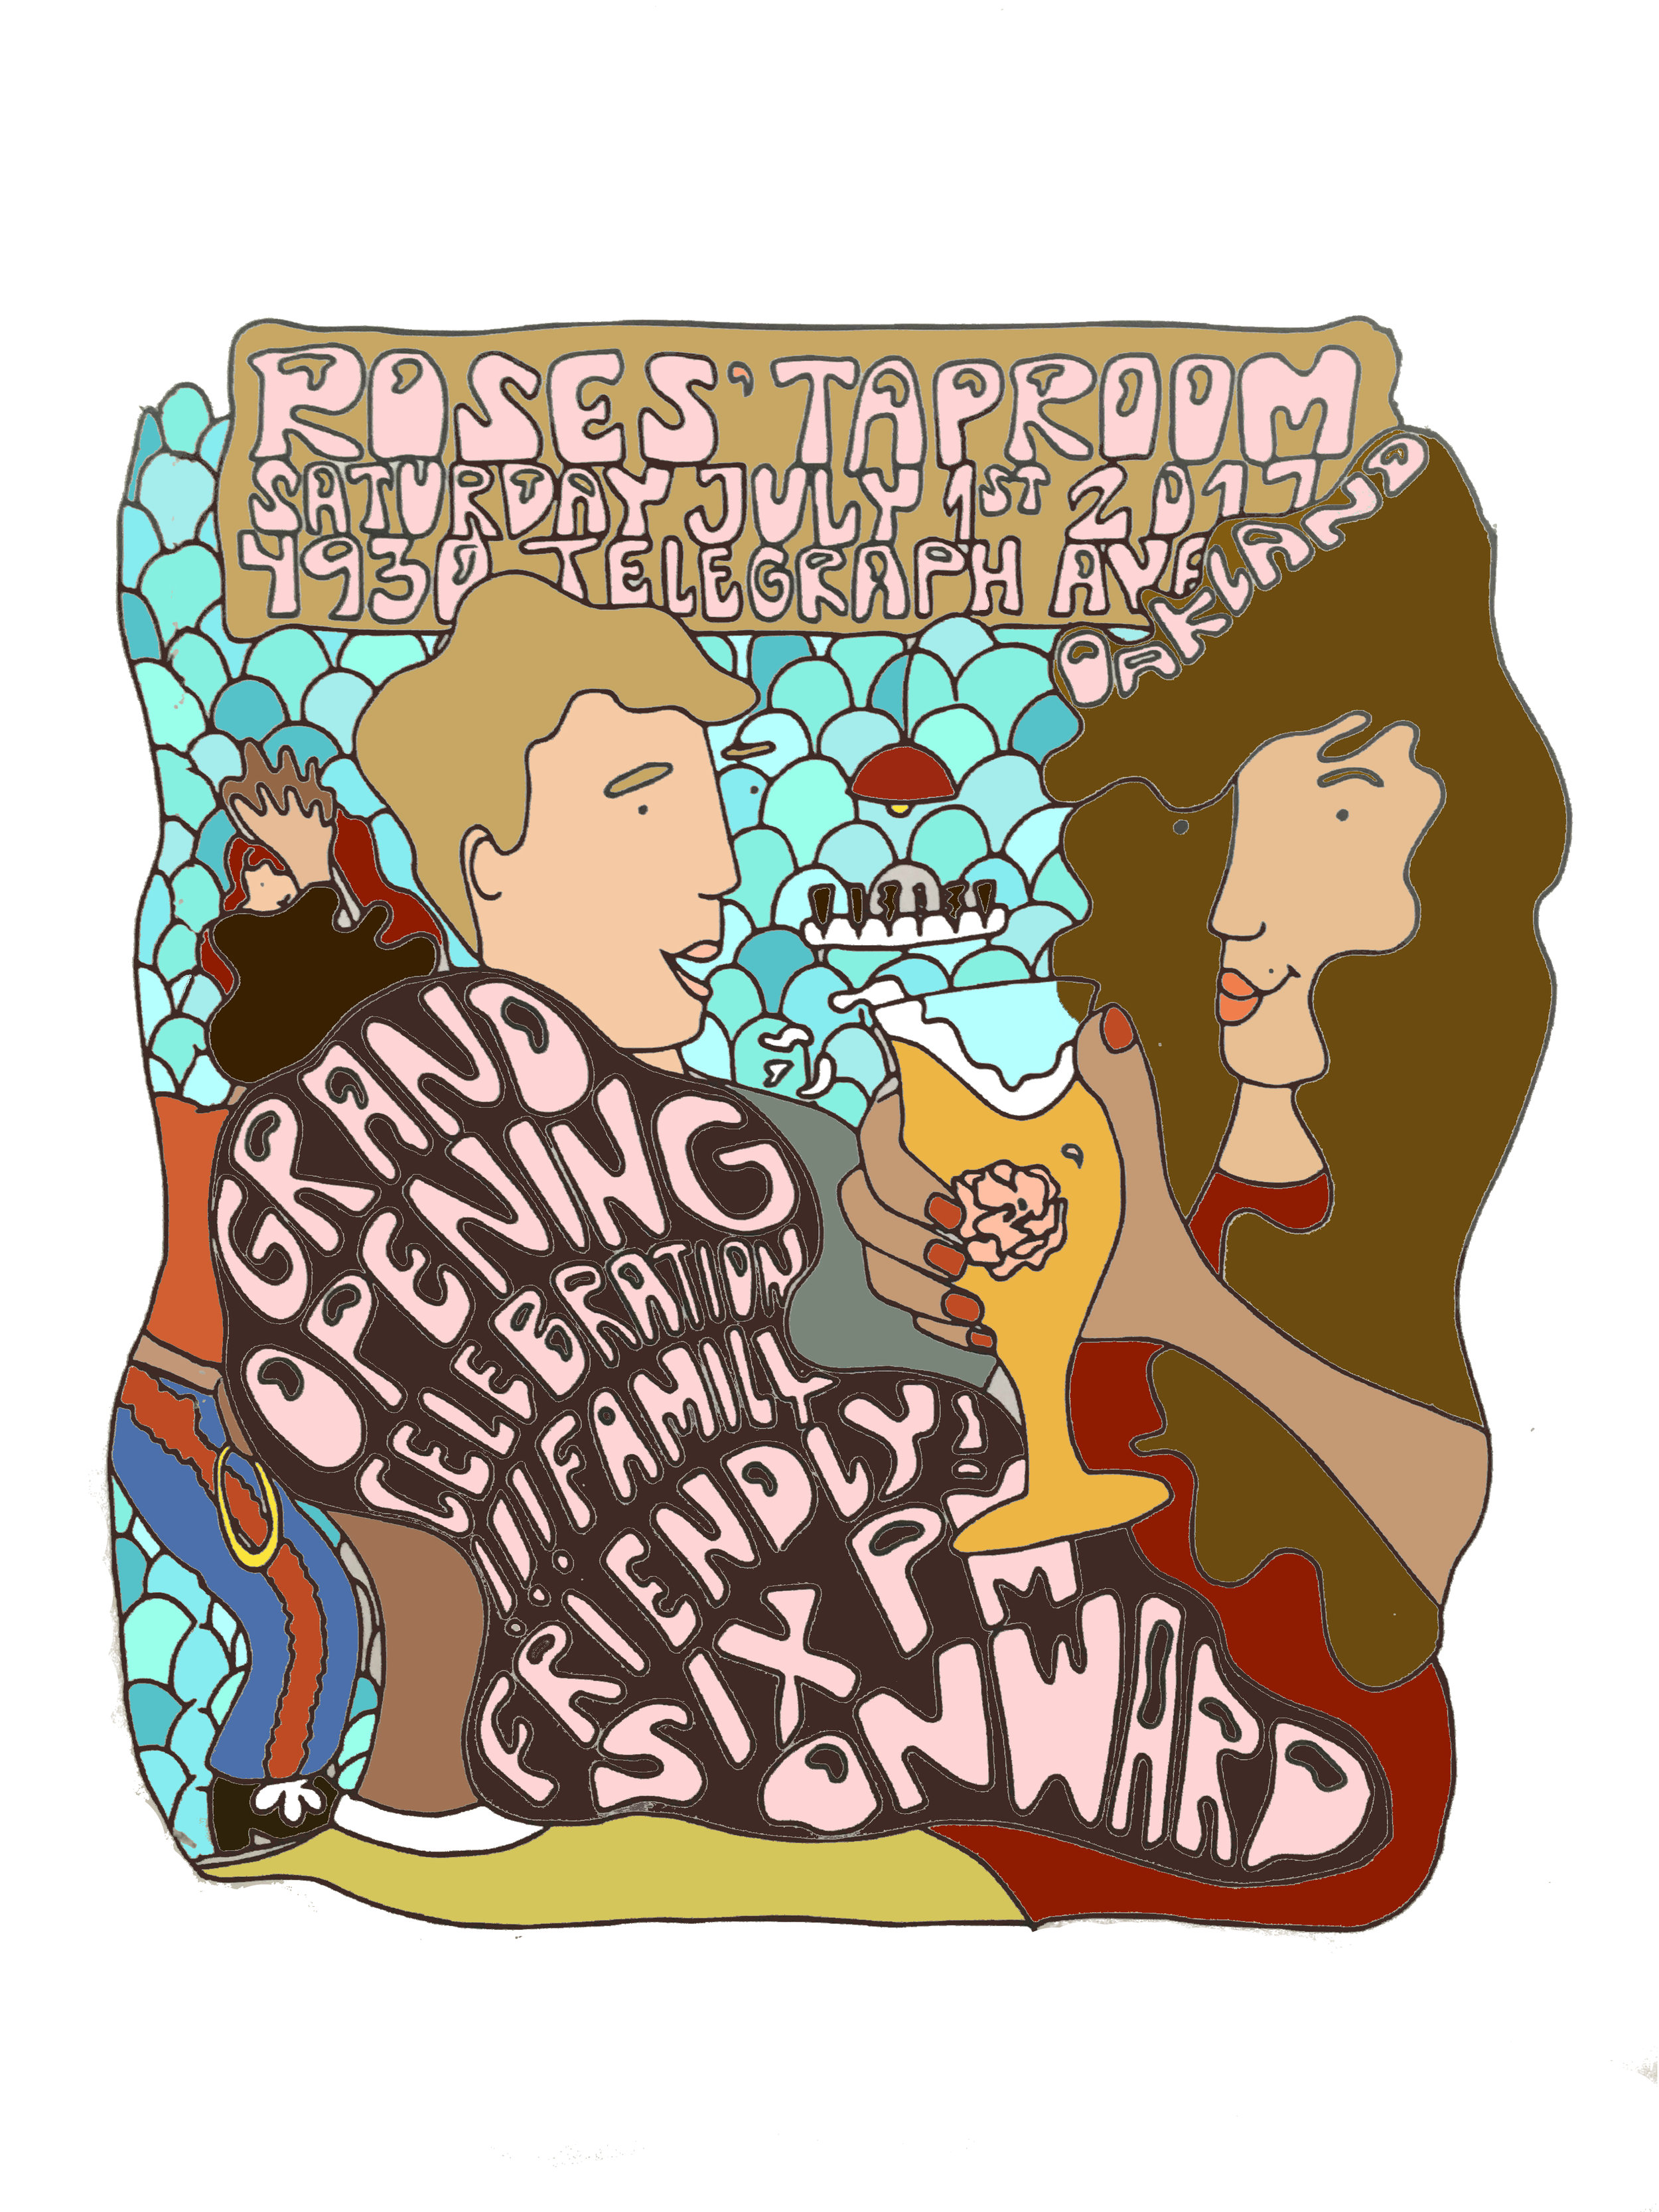 Grand Opening Poster, Roses' Taproom